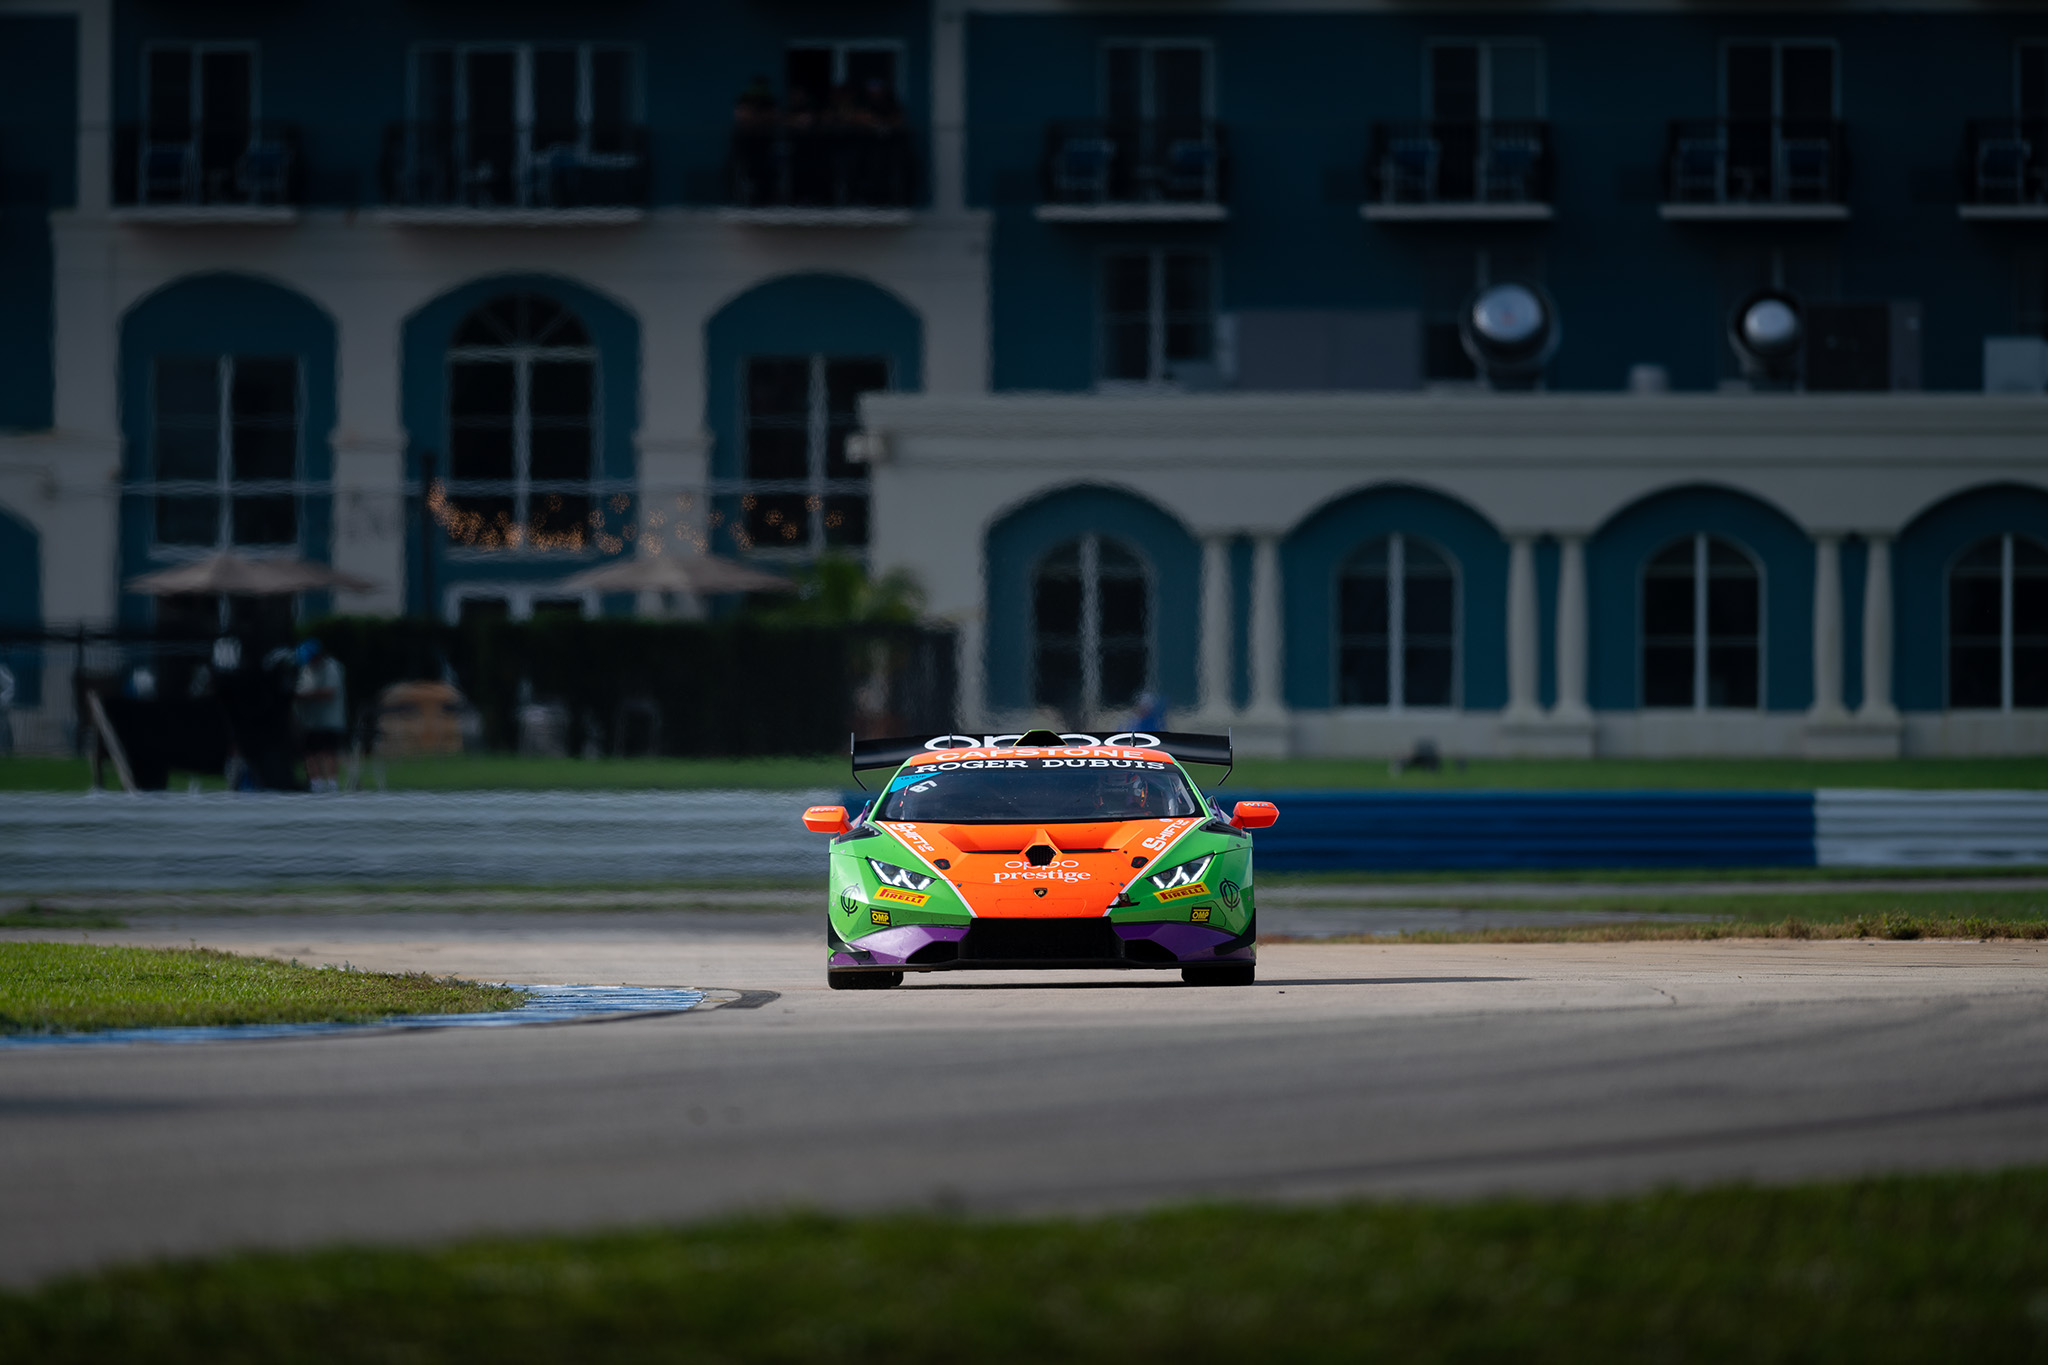 Sydney McKee and the Prestige Performance Lamborghini Huracan Super Trofeo set against the Seven Sebring Racing Hotel, motorsports photography by Luke Munnell